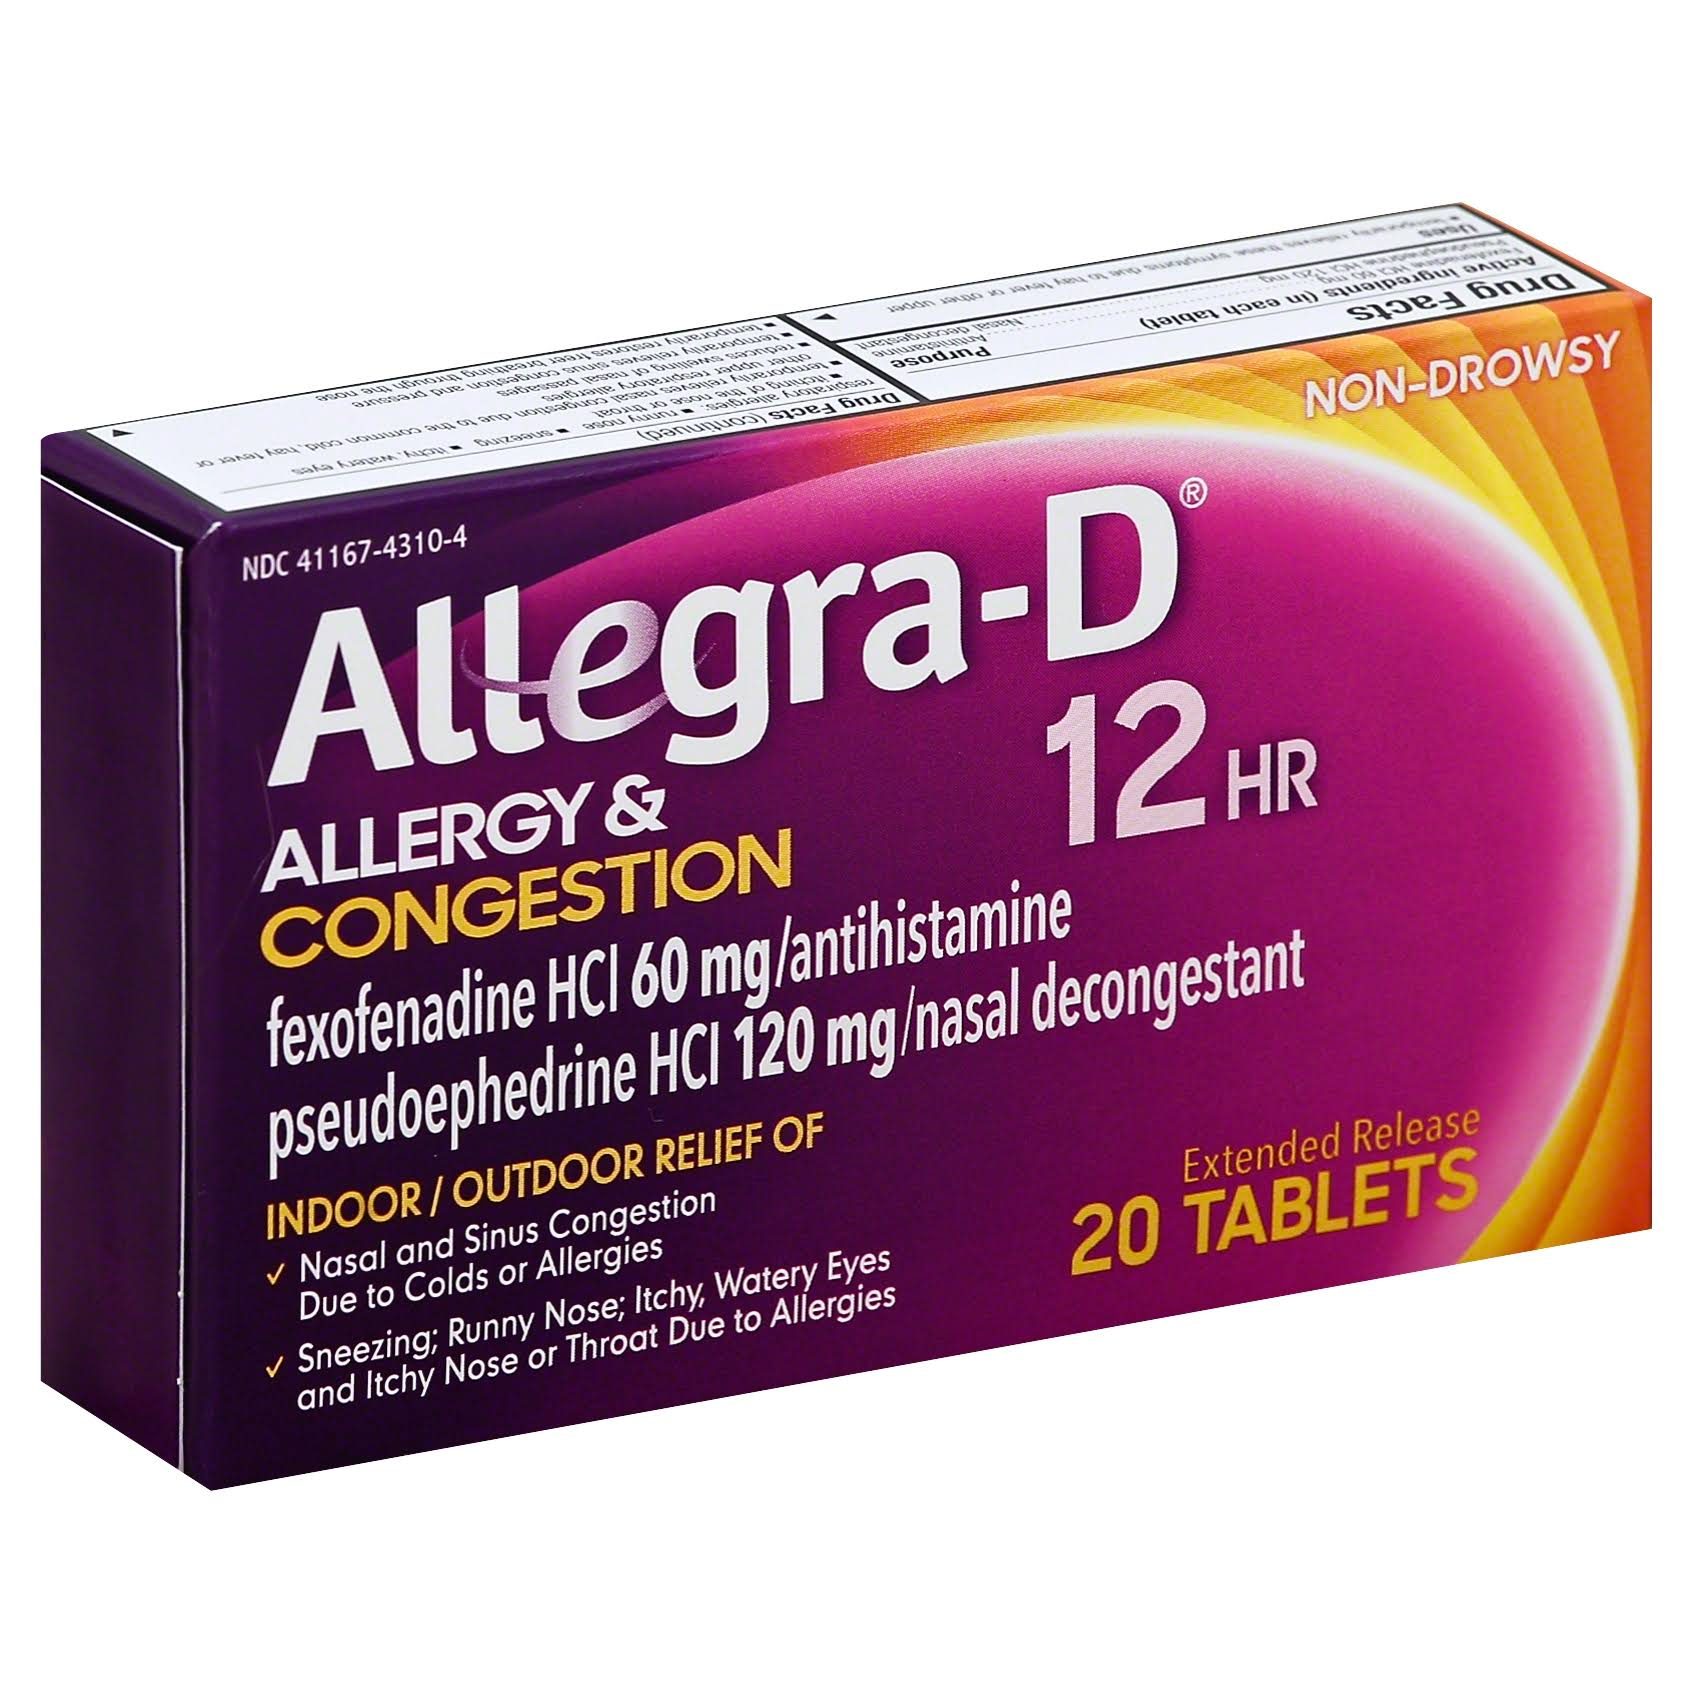 Allegra-D Allergy and Congestion Antihistamine Nasal Decongestant Tablets - 20ct